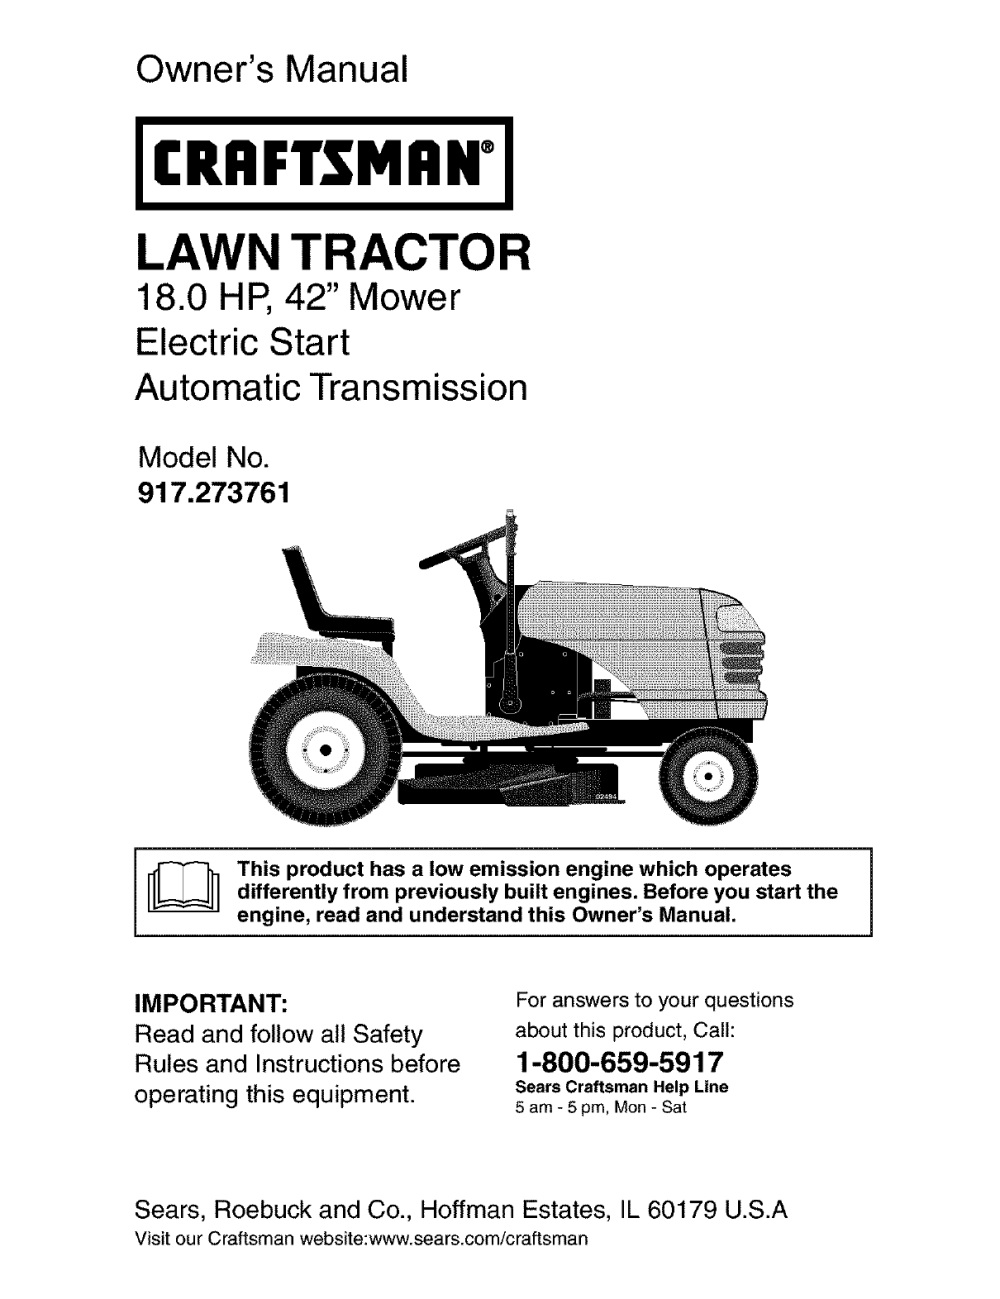 medium resolution of craftsman 917273761 user manual lawn tractor manuals and guides l0403297 wiring diagram craftsman garden tractor 917 273761